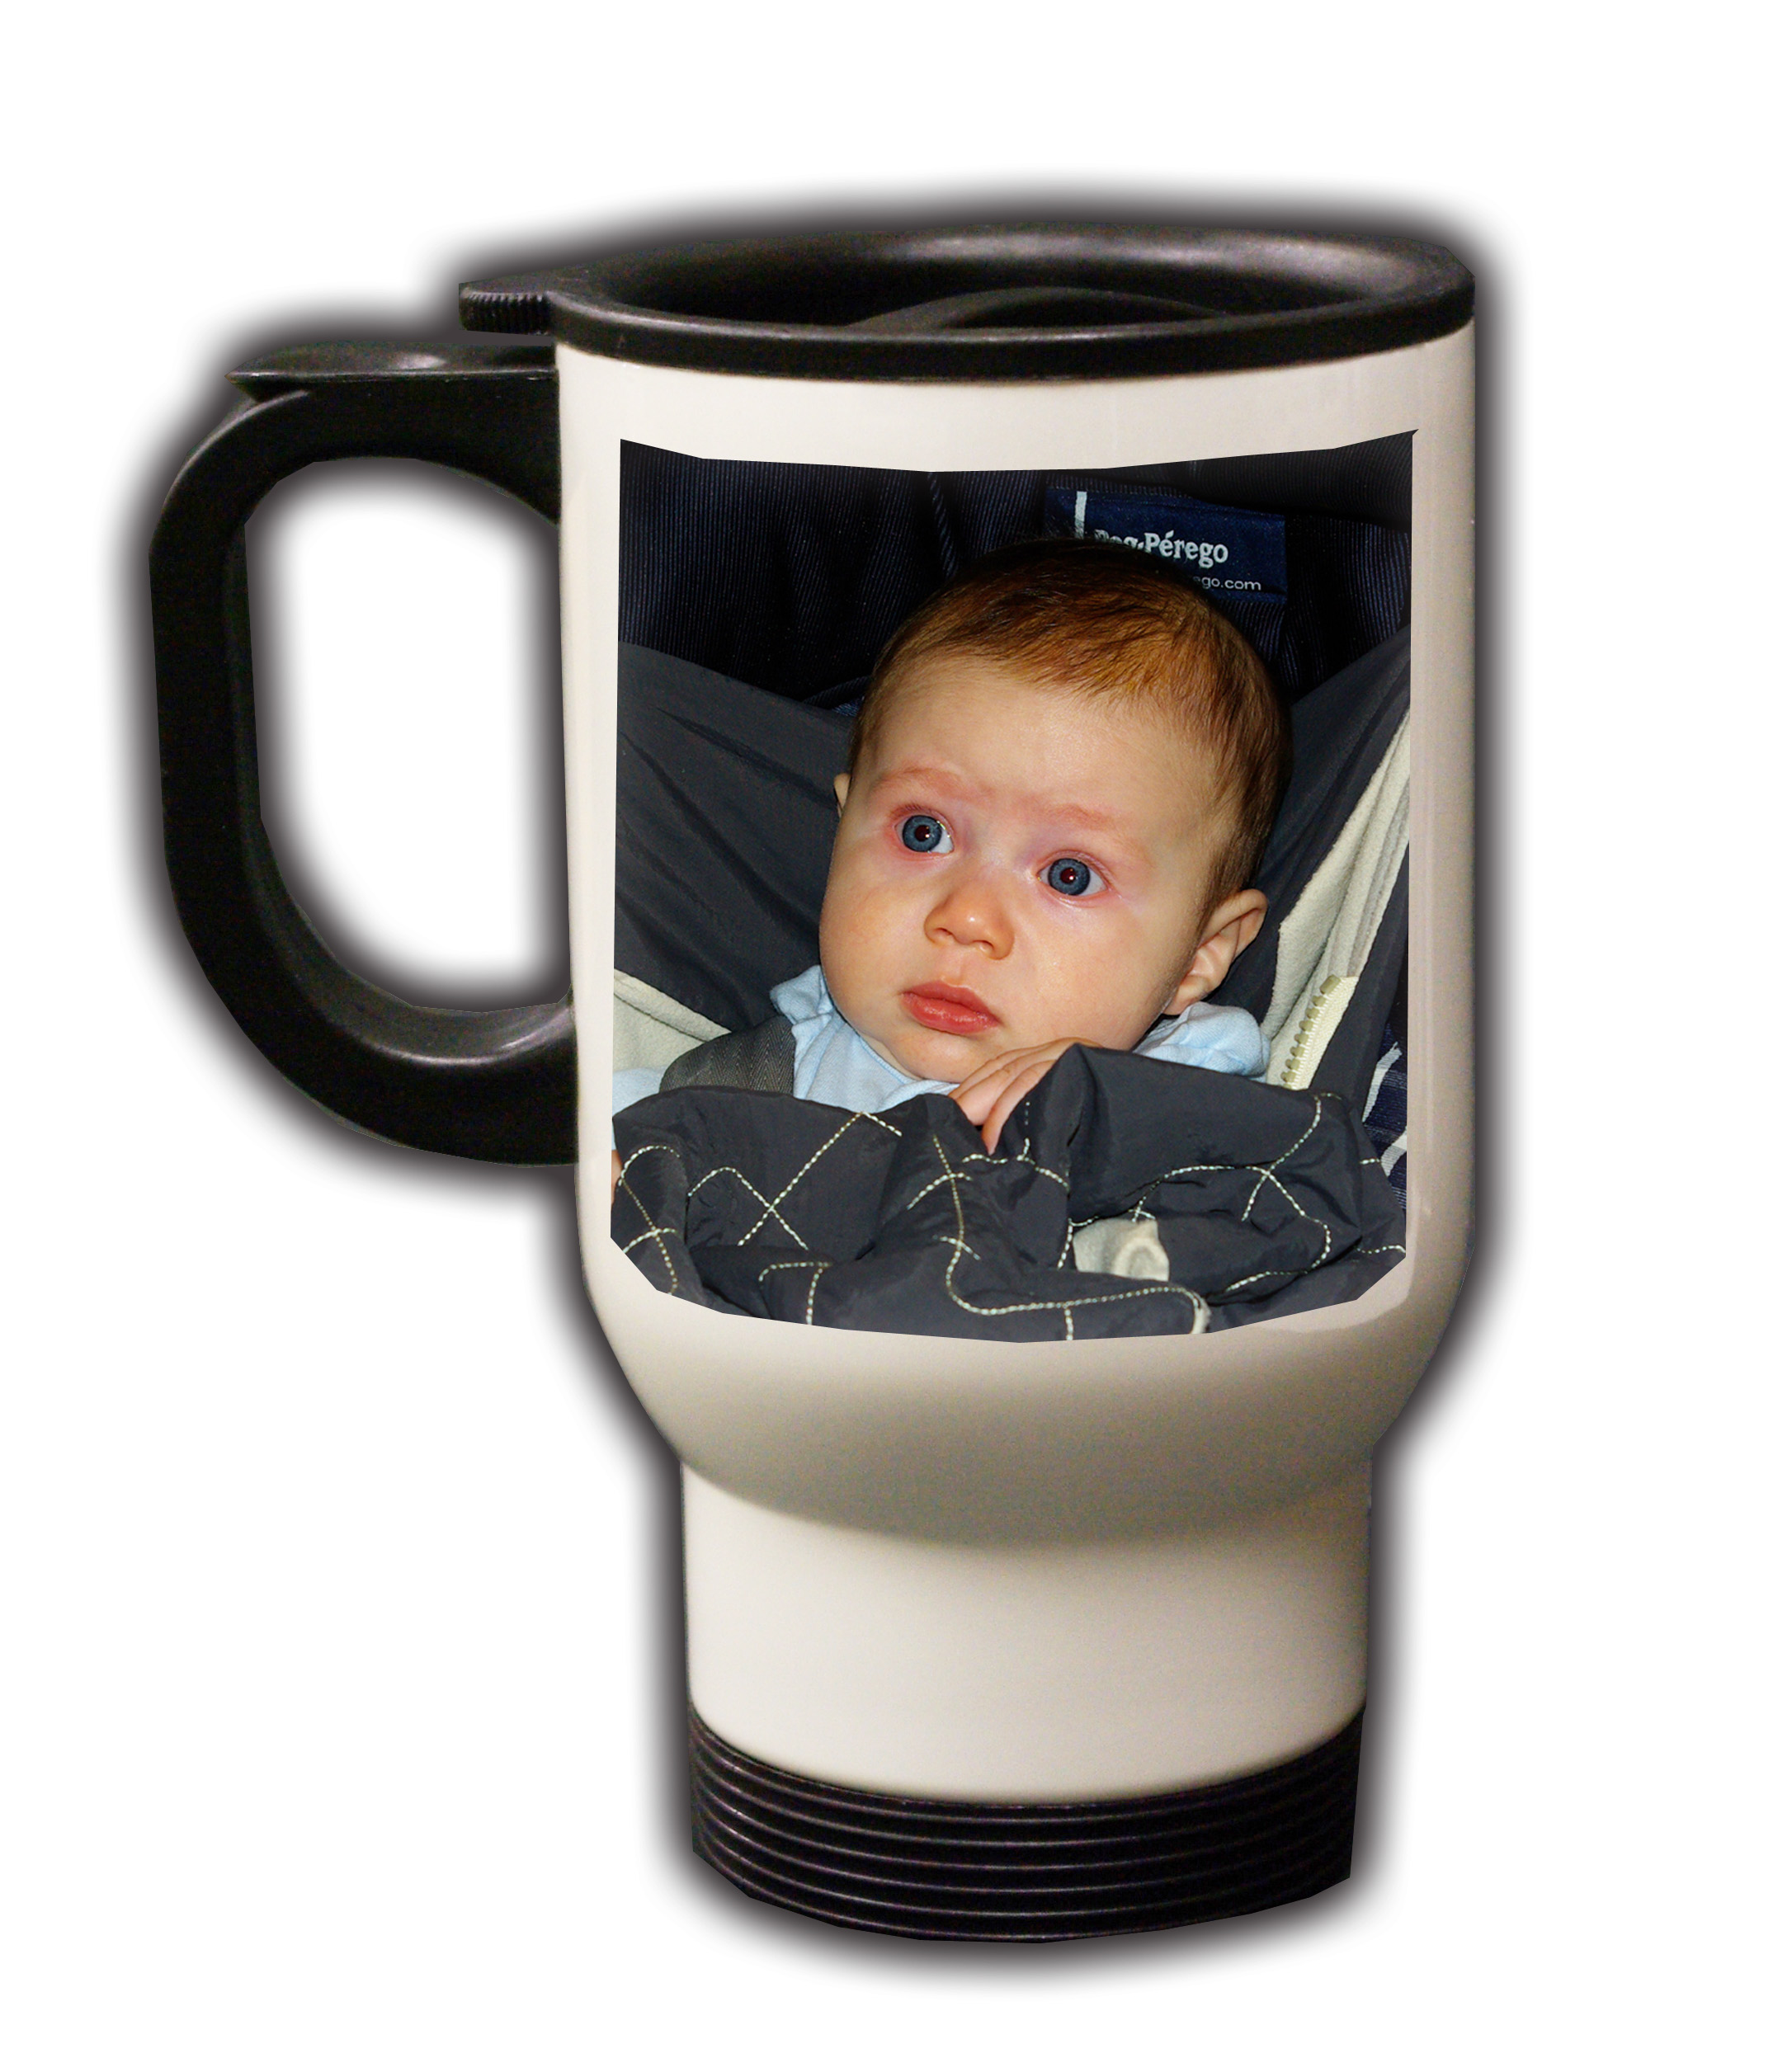 Stainless Steel Travel Mug Personalized Photo Coffee Mug